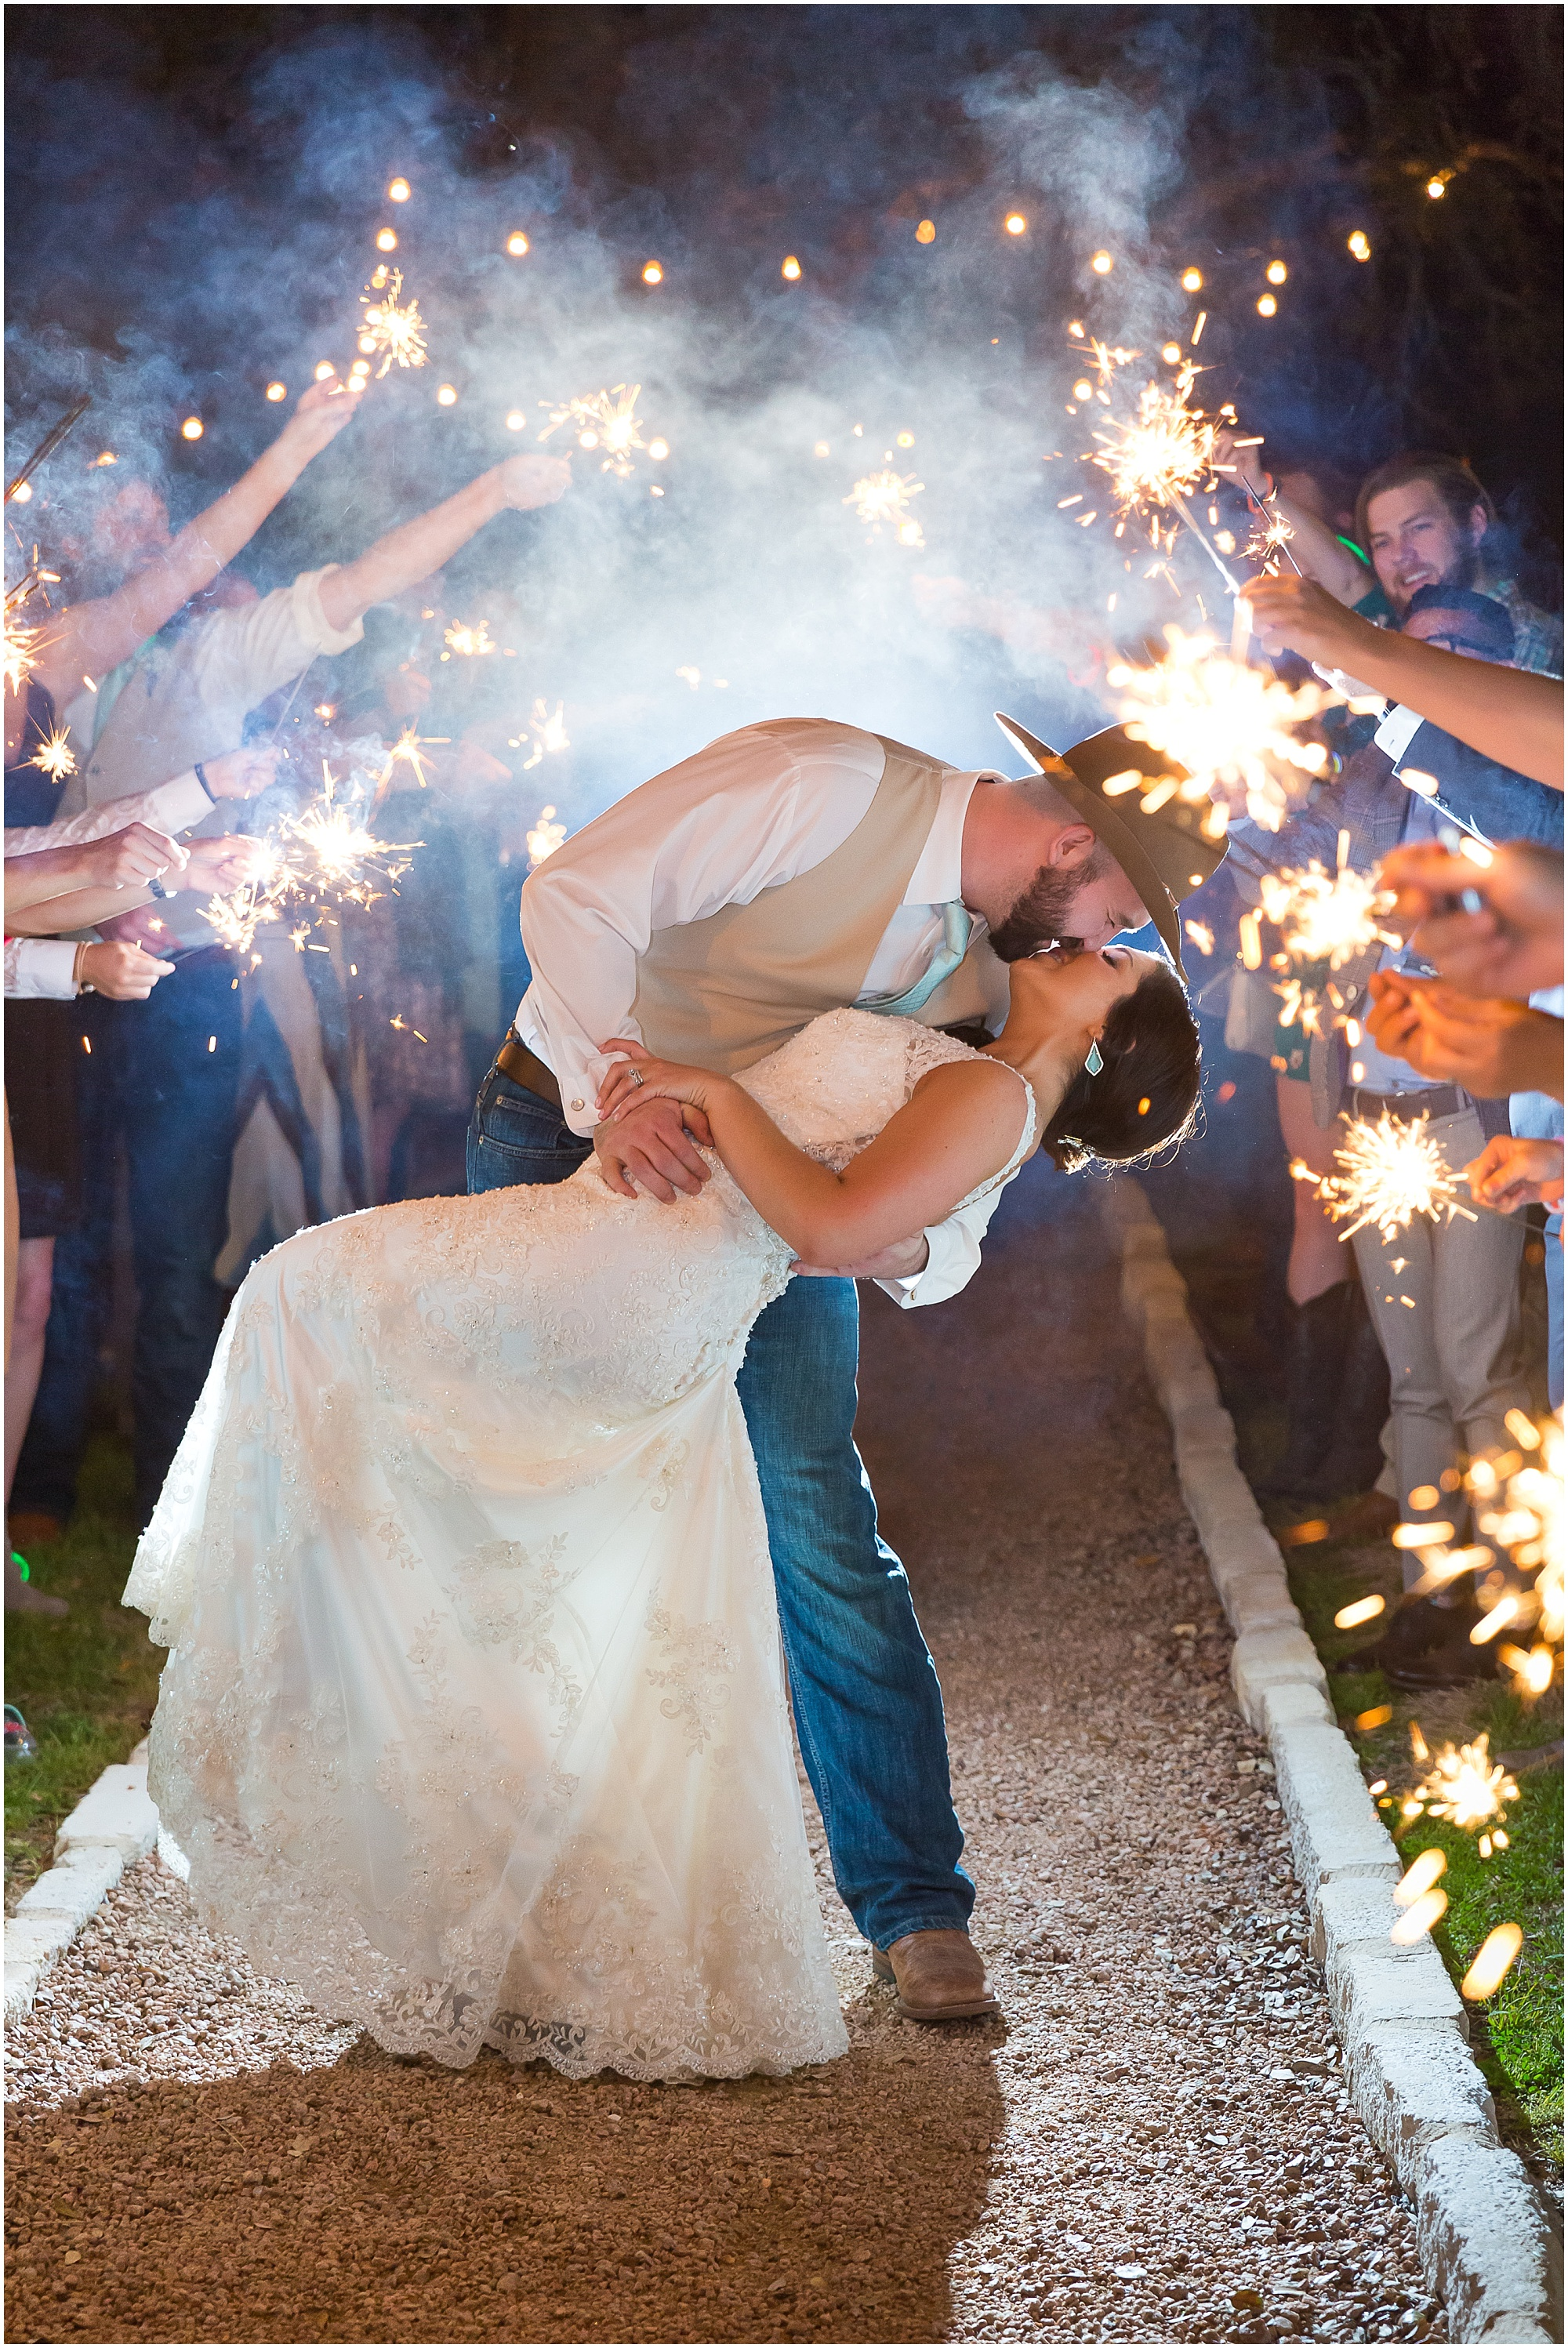 Groom dips bride and kisses her during their sparkler exit - Peacock River Ranch - Jason & Melaina Photography